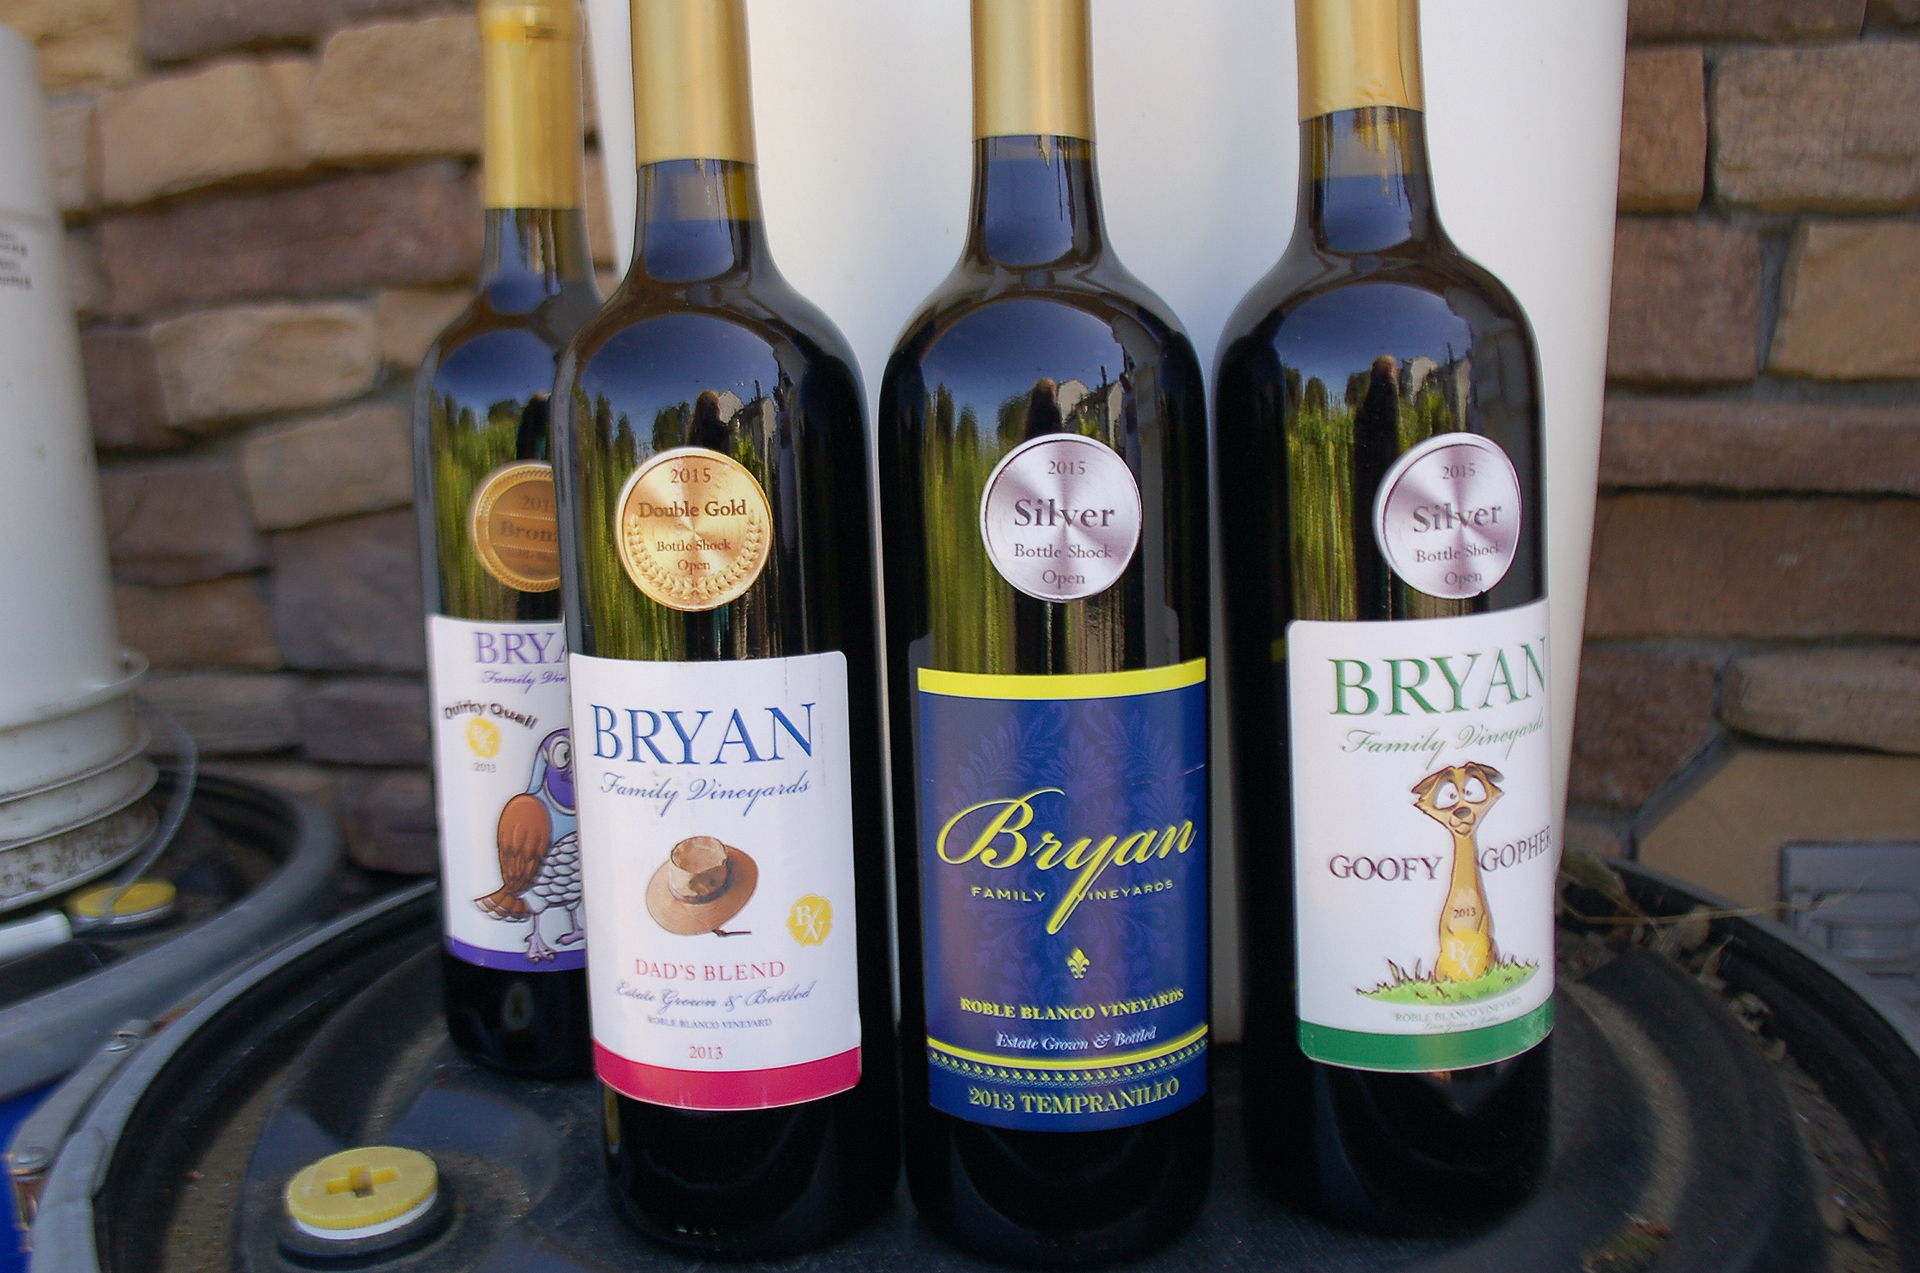 Scott Bryan's serious winemaking hobby has earned him medals at home winemaking competitions. His wines have humorous names like Goofy Gopher, Quirky Quail and Dad's Blend.